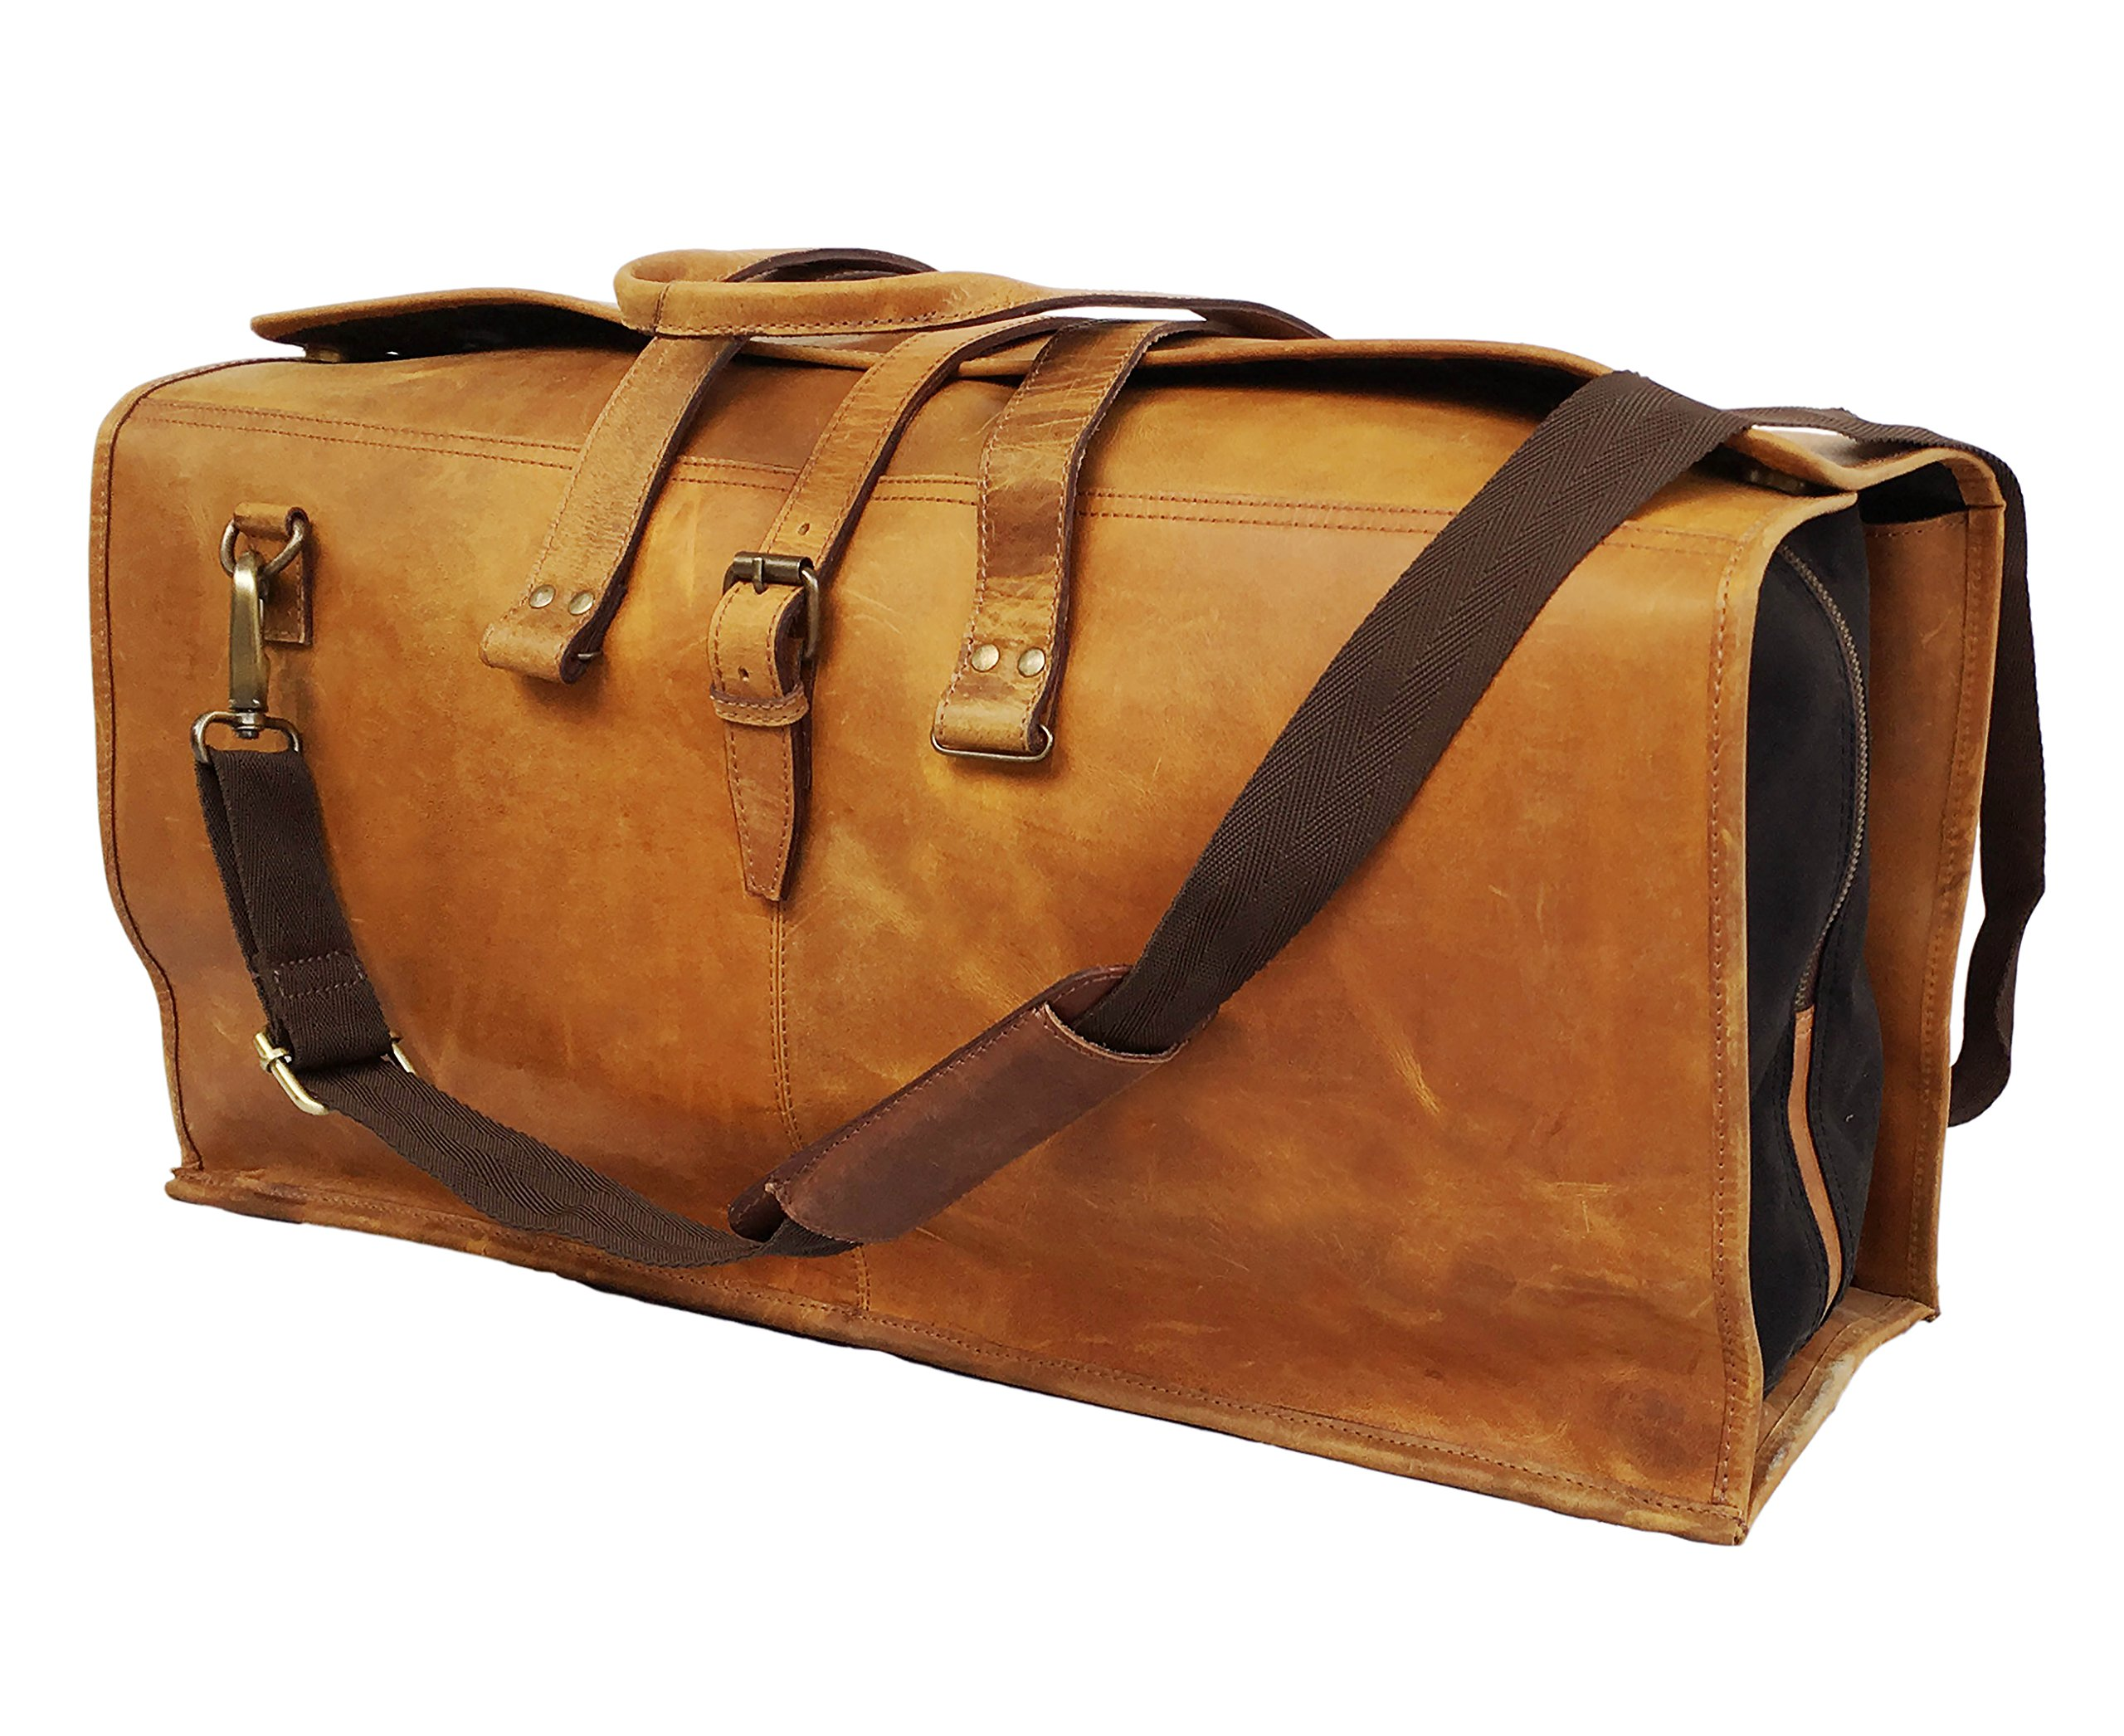 24 Inch Leather Duffel Bags Leather Luggage Canvas Bags Leather Travel Bags  Leather Holdall Leather Canvas Bags 493ac97eb64f9